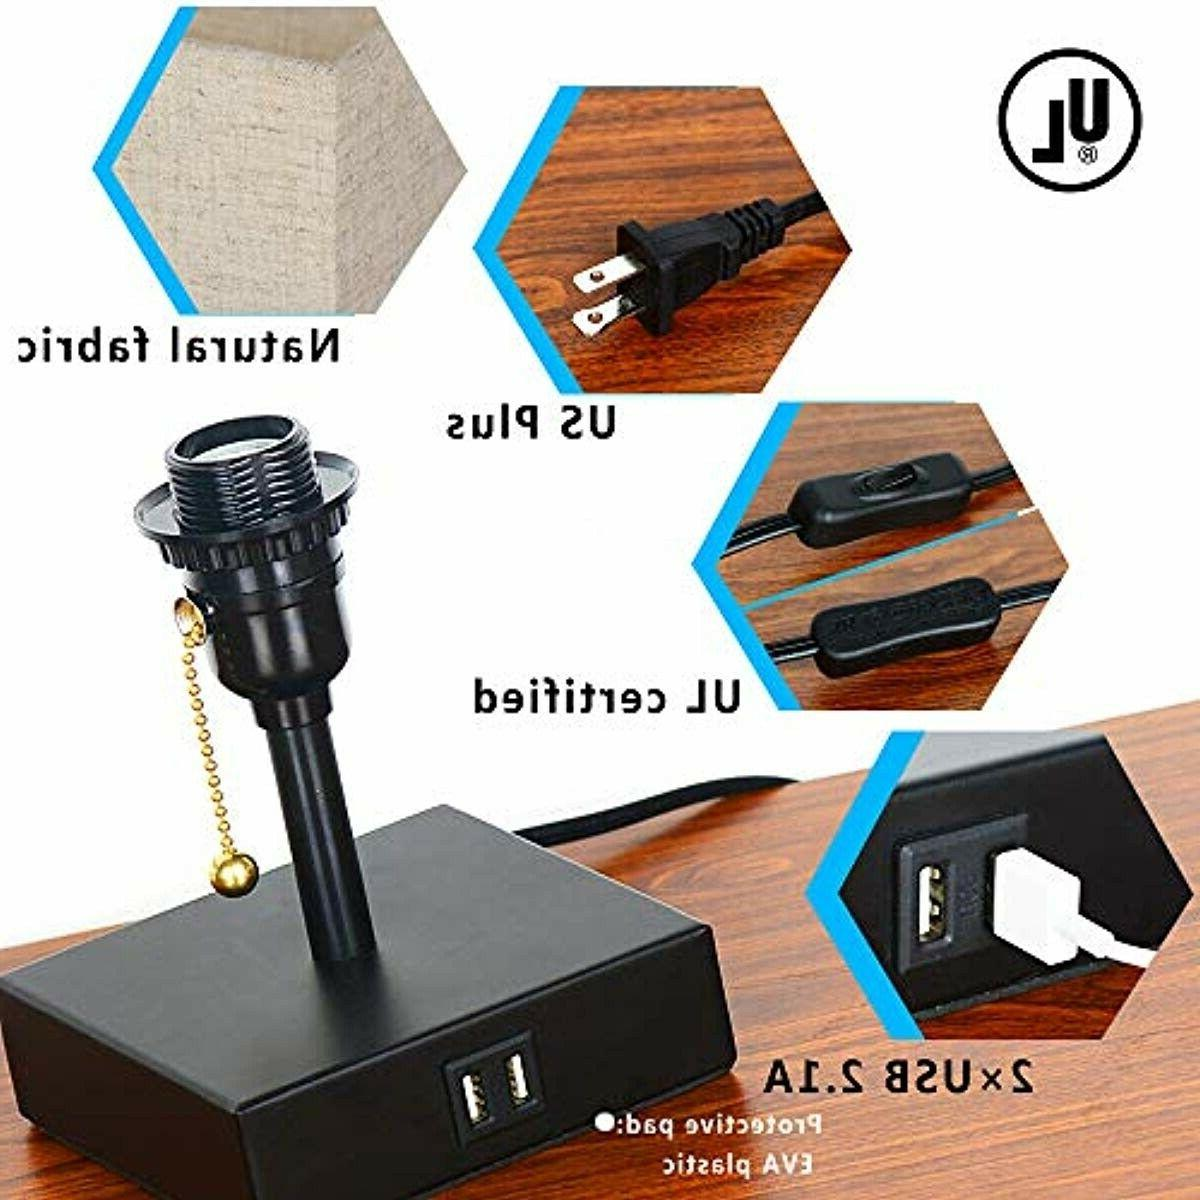 USB Desk Lamp, Acaxin Lamp Dual Charge Port, Wood